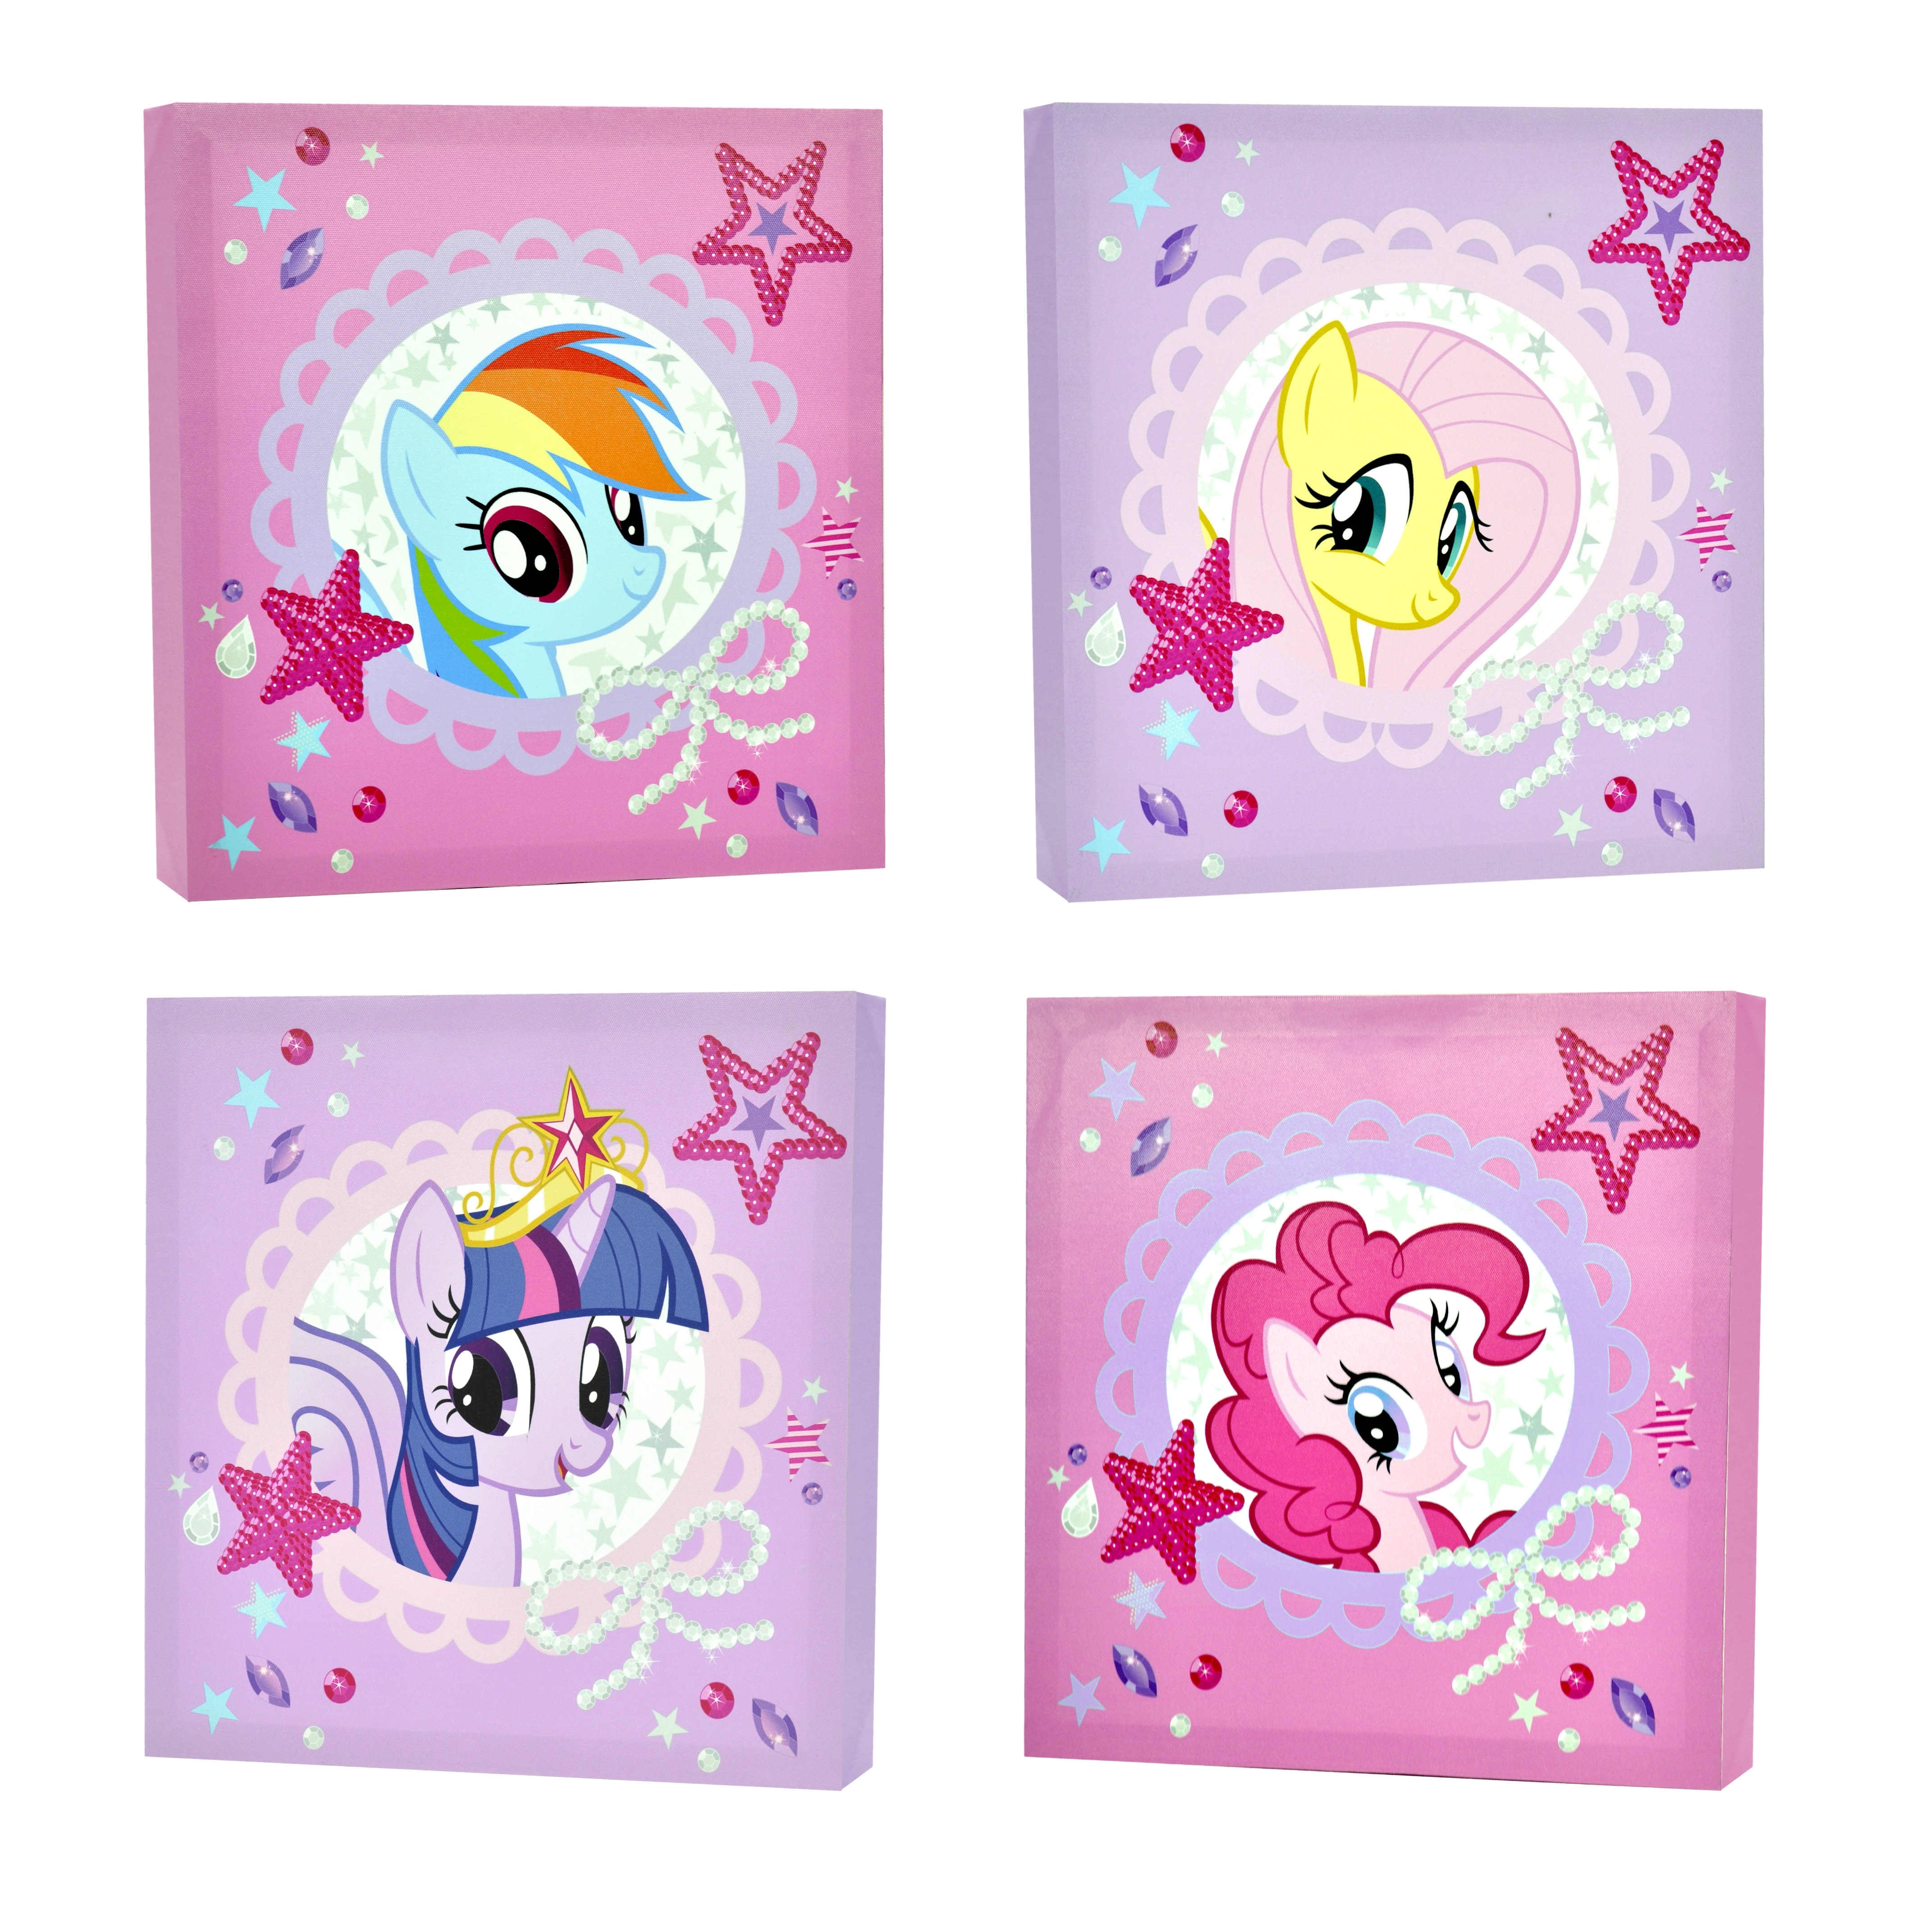 Newest My Little Pony 4 Piece Canvas Wall Art – Walmart Inside My Little Pony Wall Art (View 11 of 15)